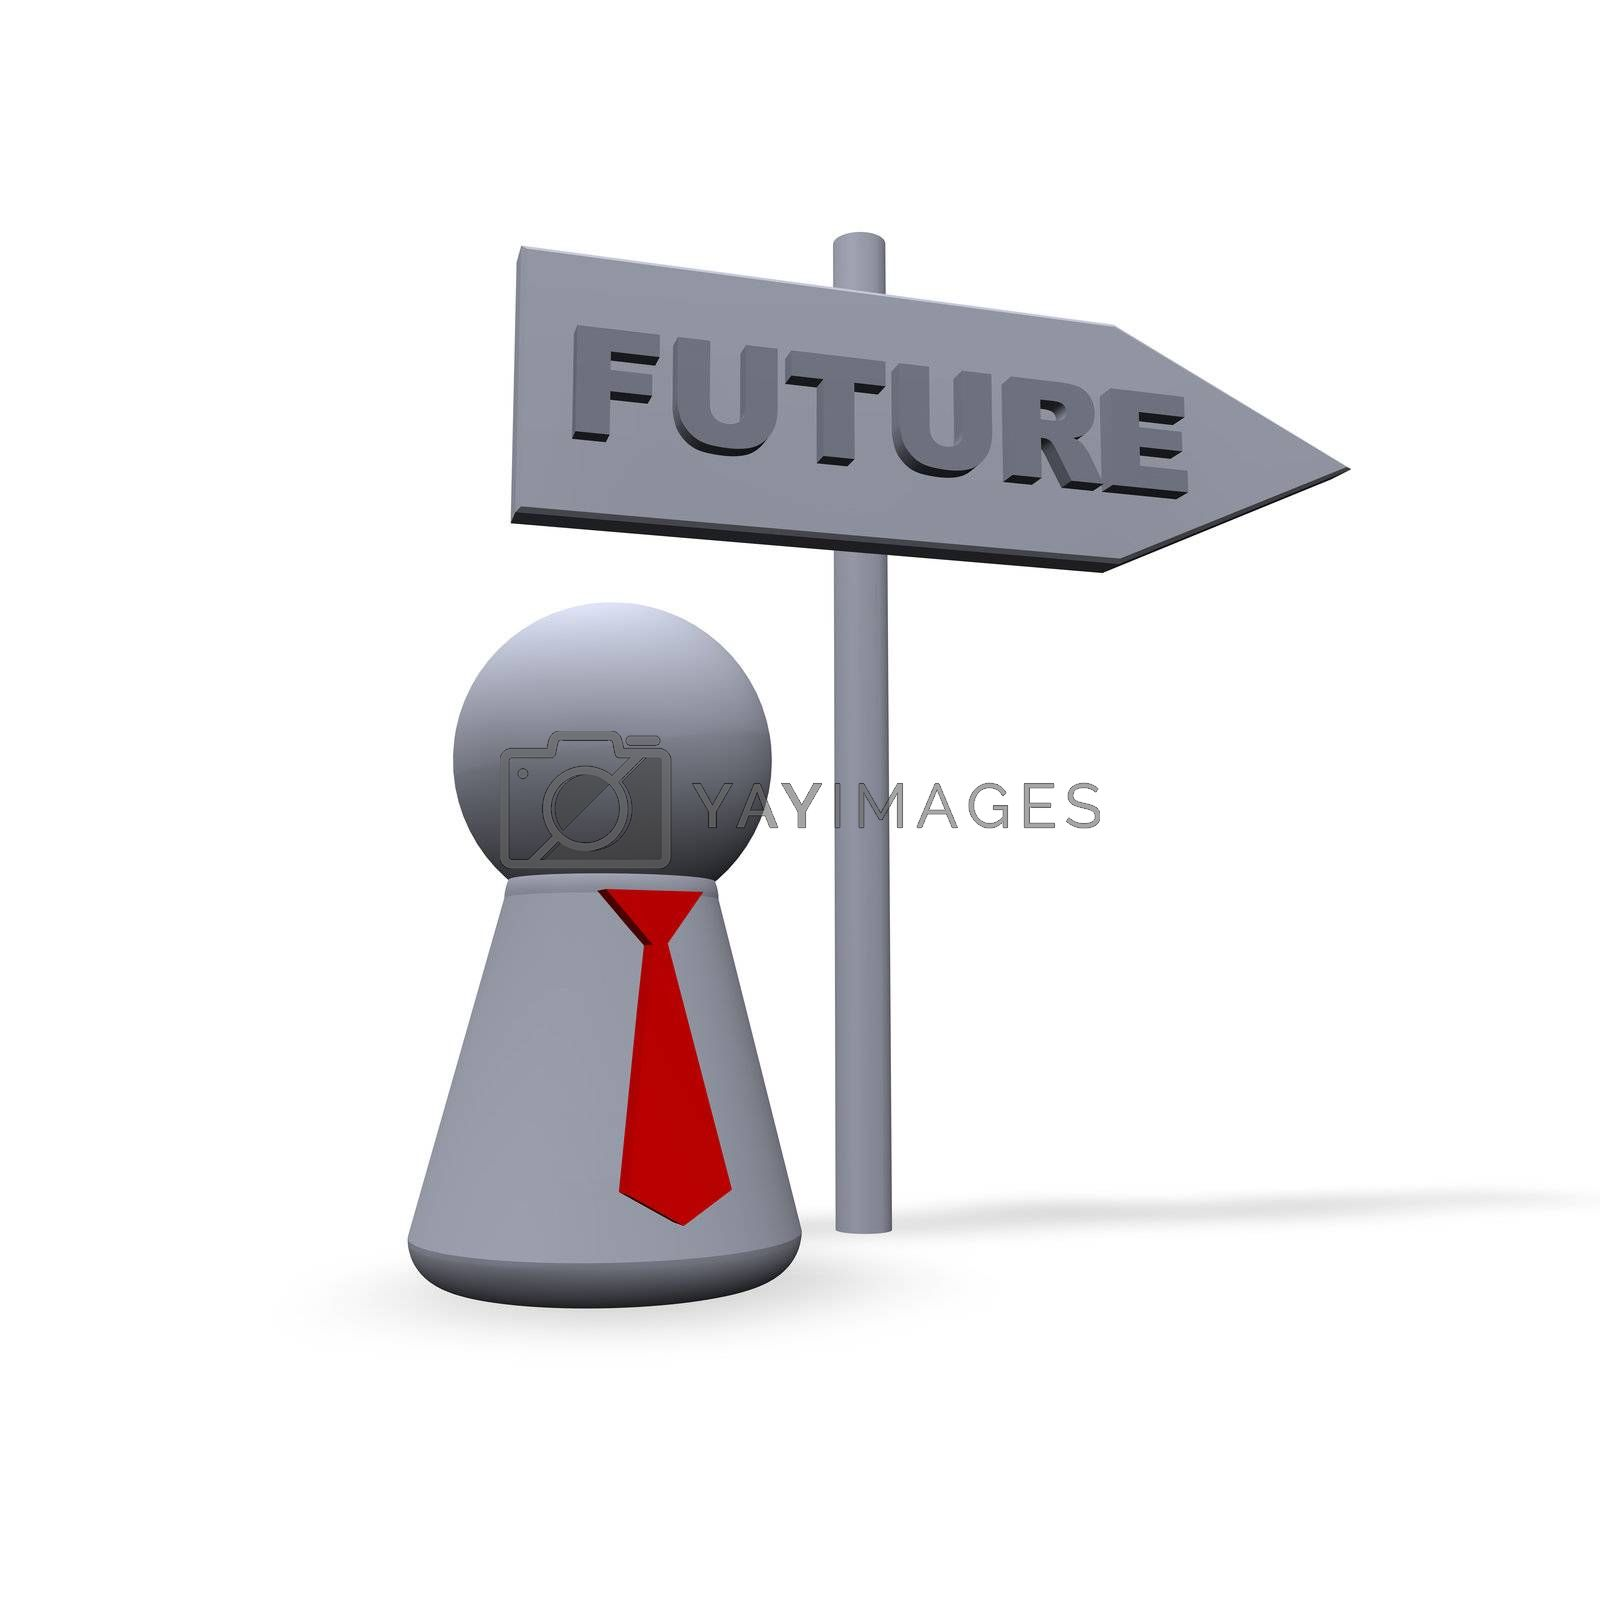 play figure with red tie and sign to future